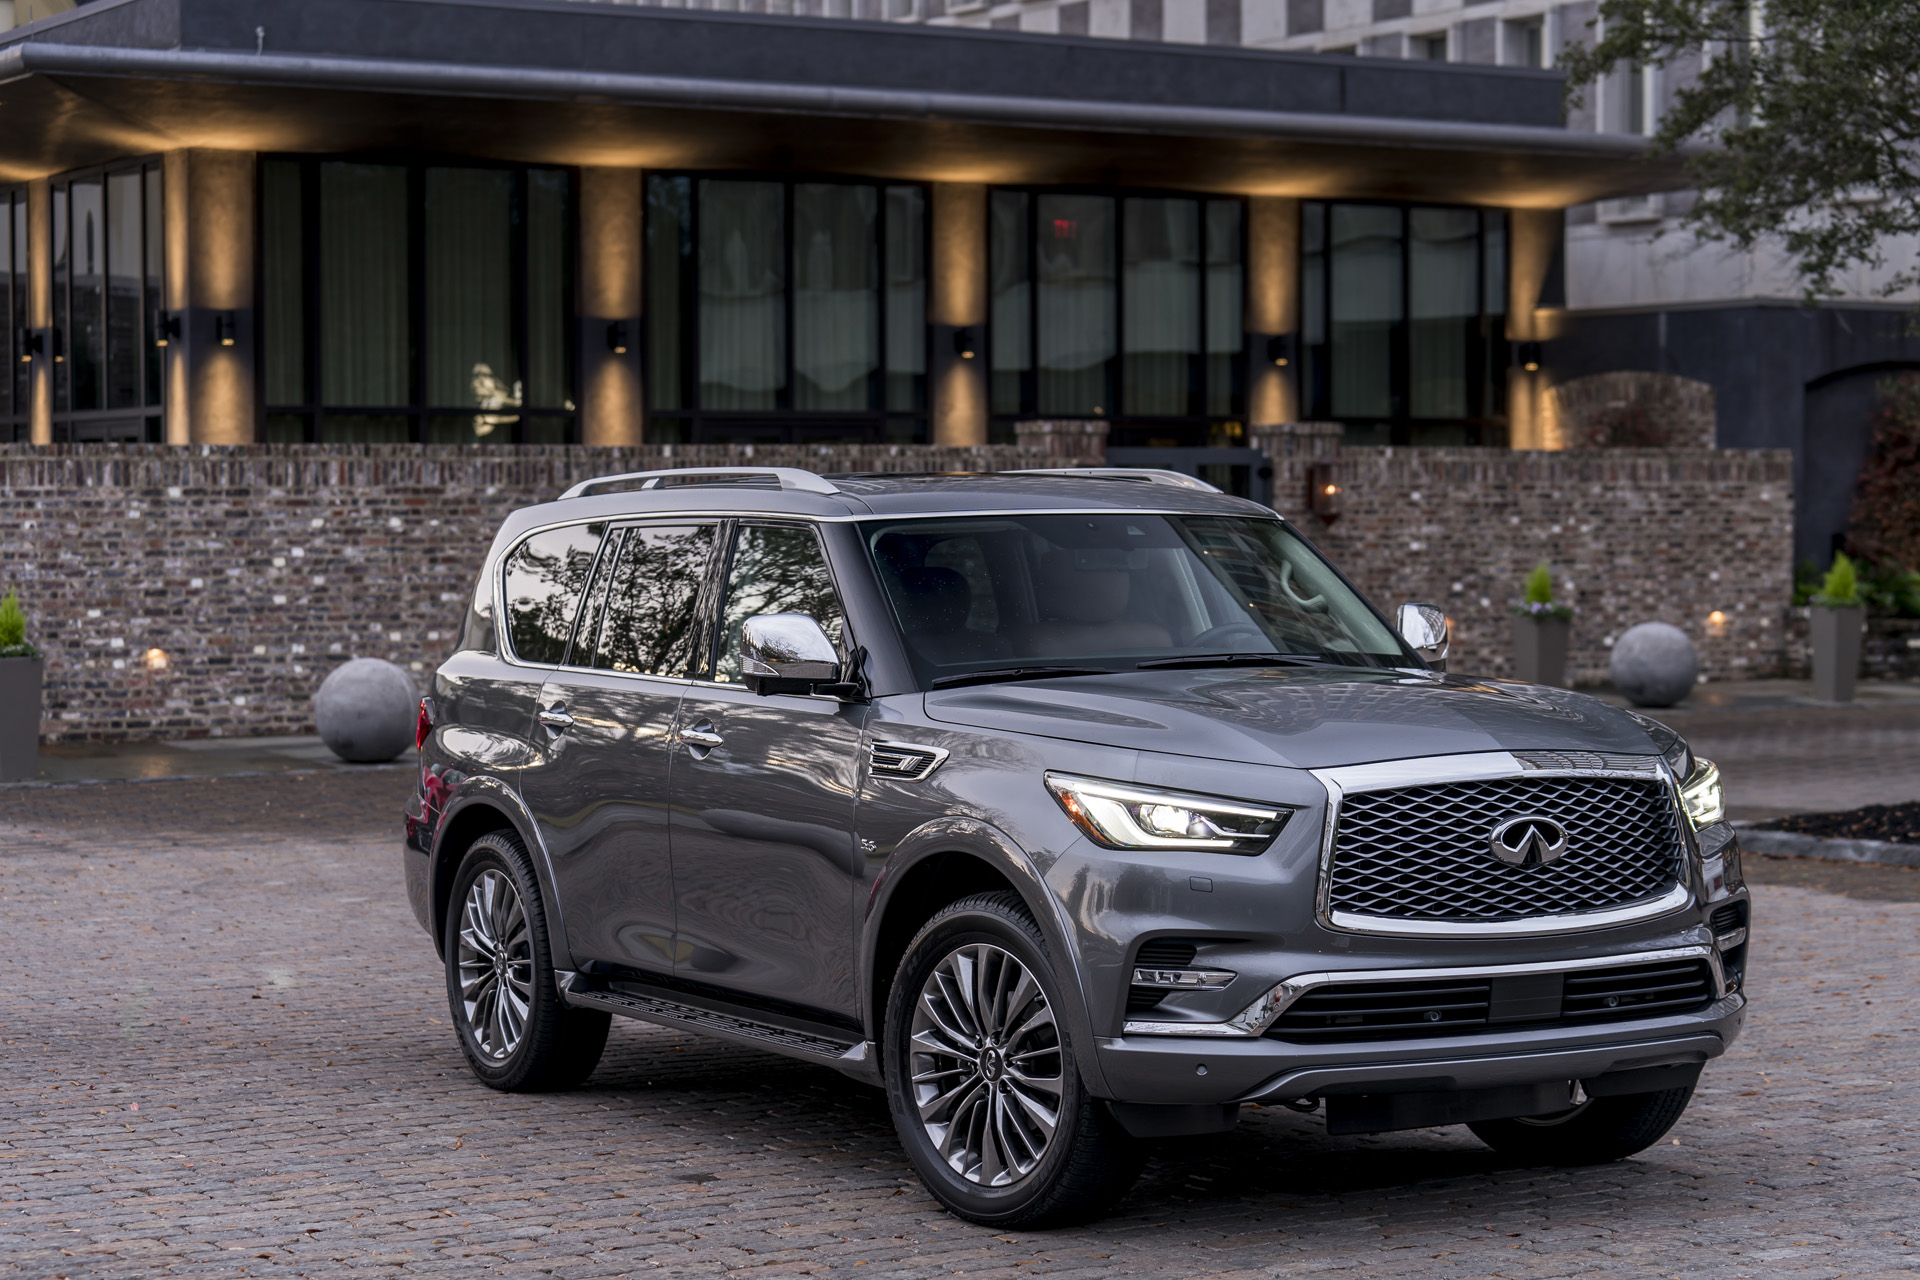 2018 Infiniti Qx80 First Drive Review Age Is More Than A Number